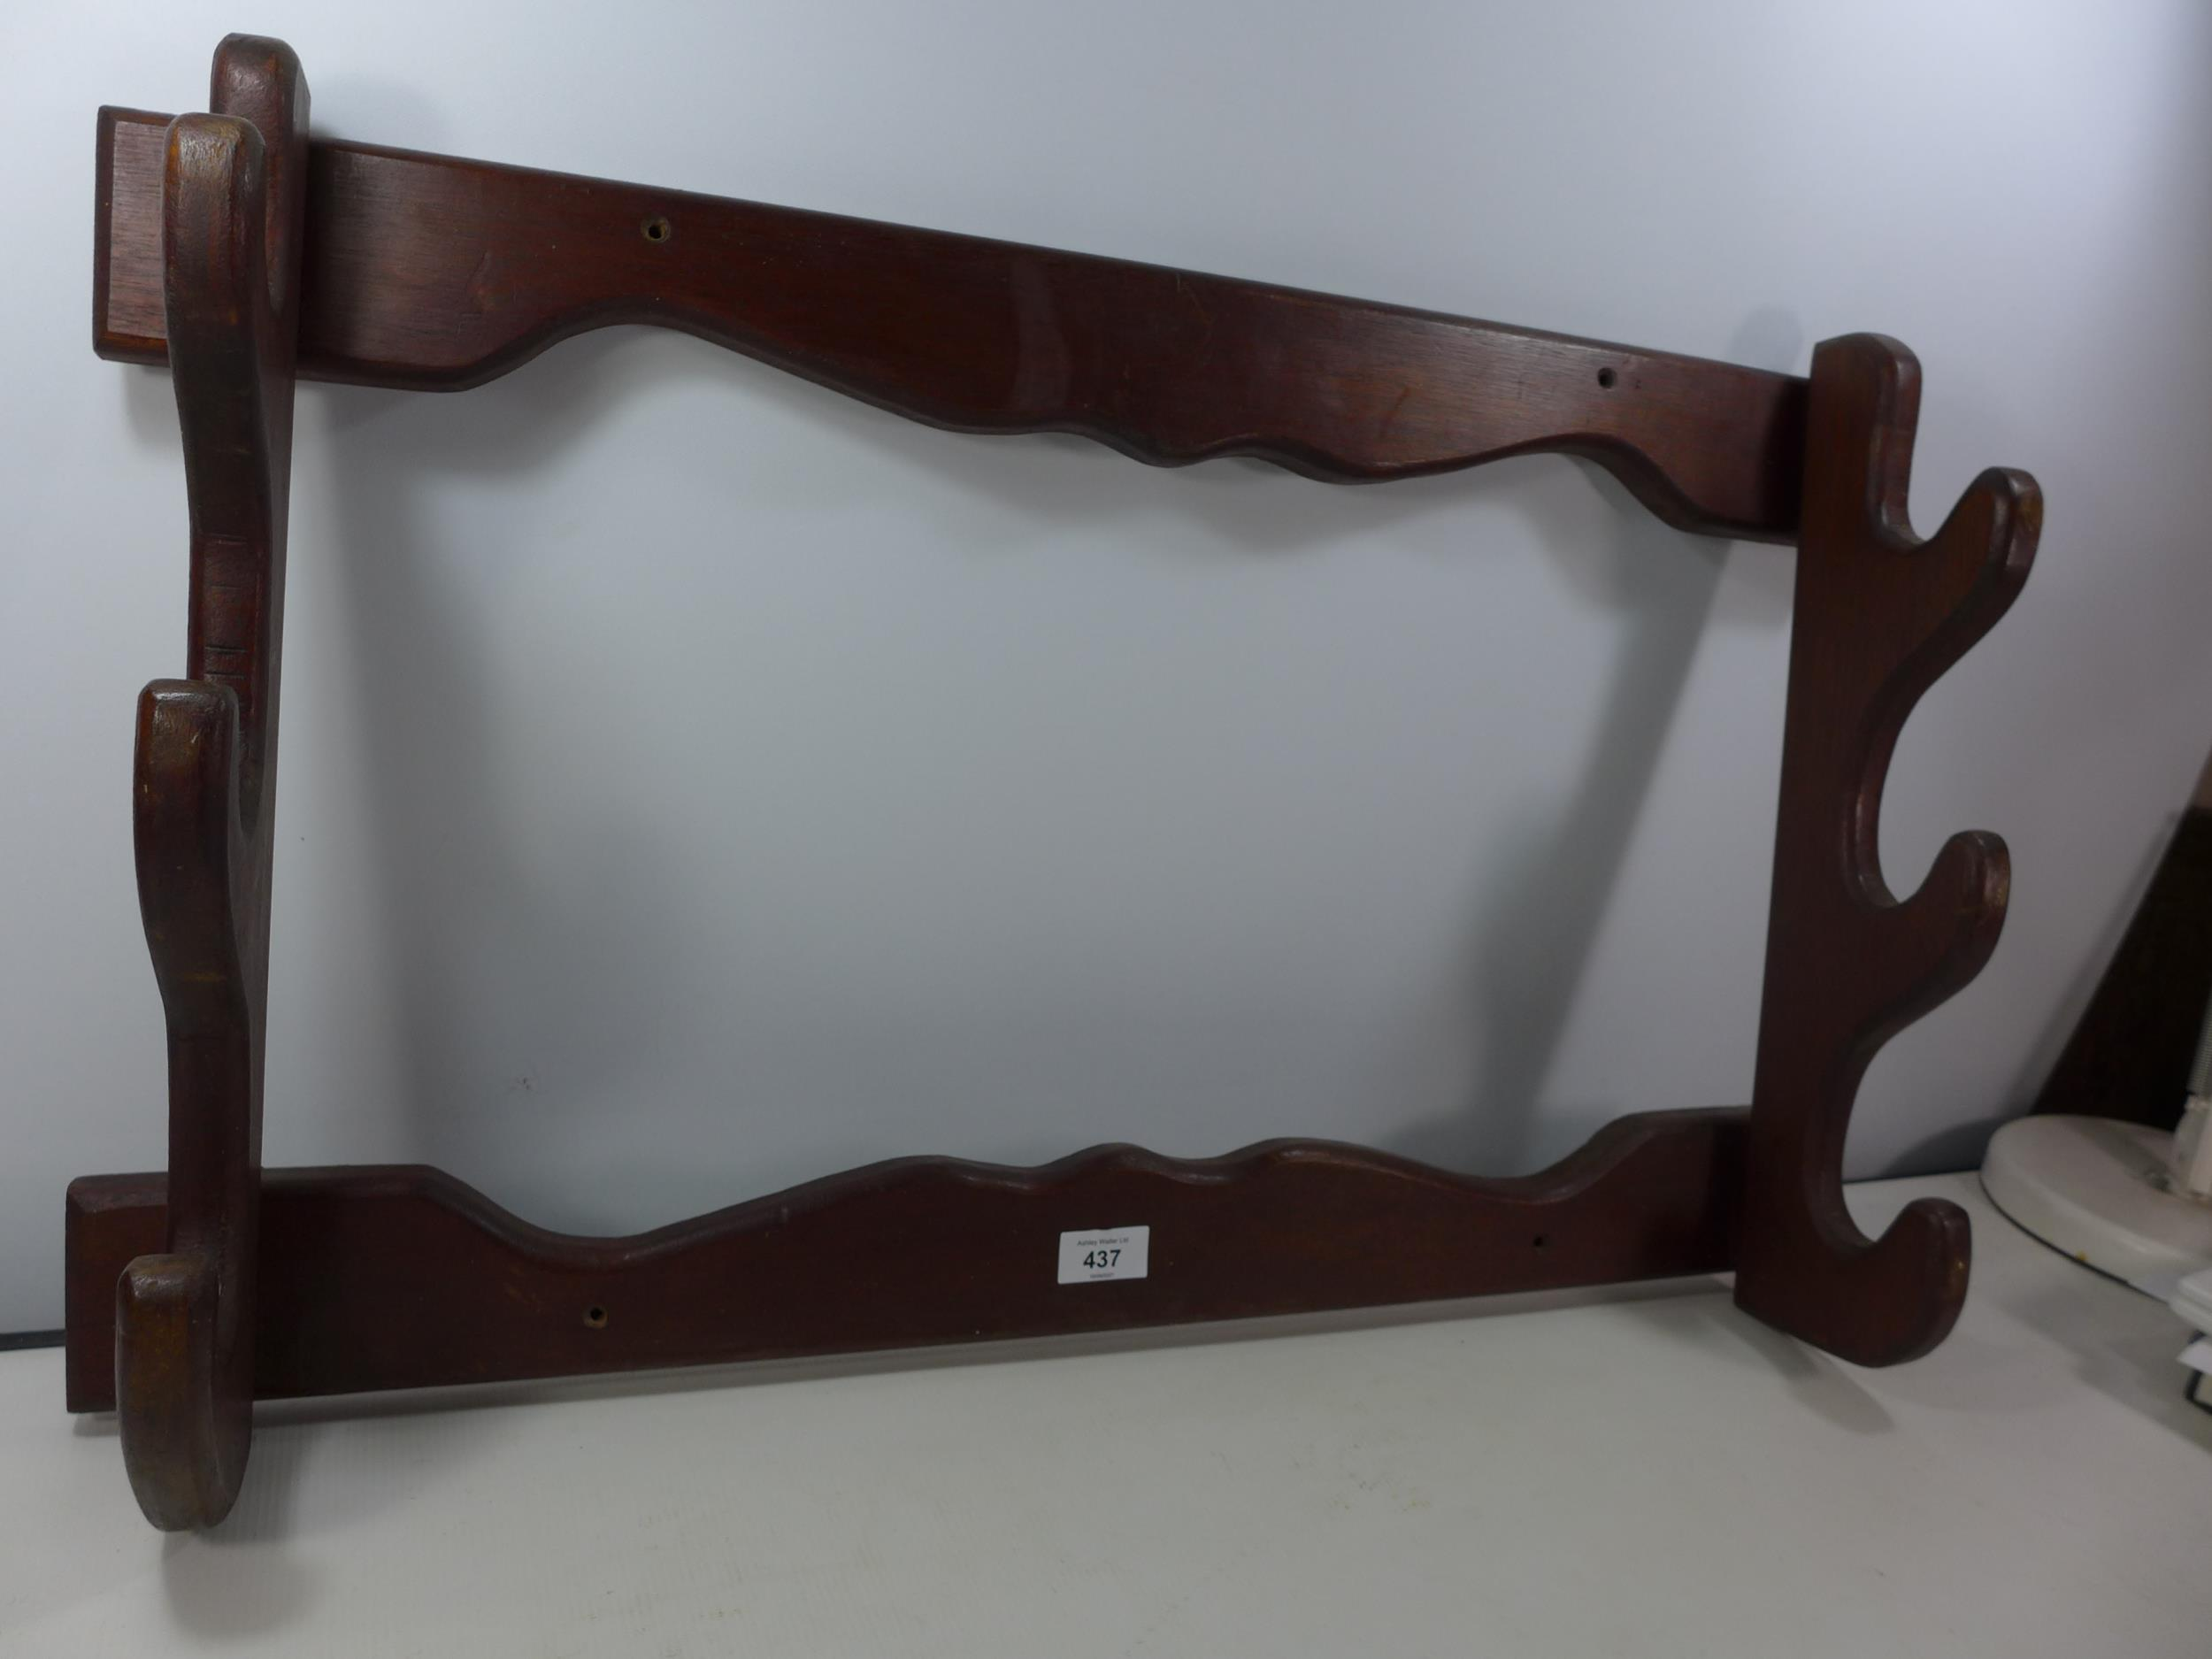 A WALL MOUNTED WOODEN THREE GUN RACK, WIDTH 74CM - Image 2 of 2